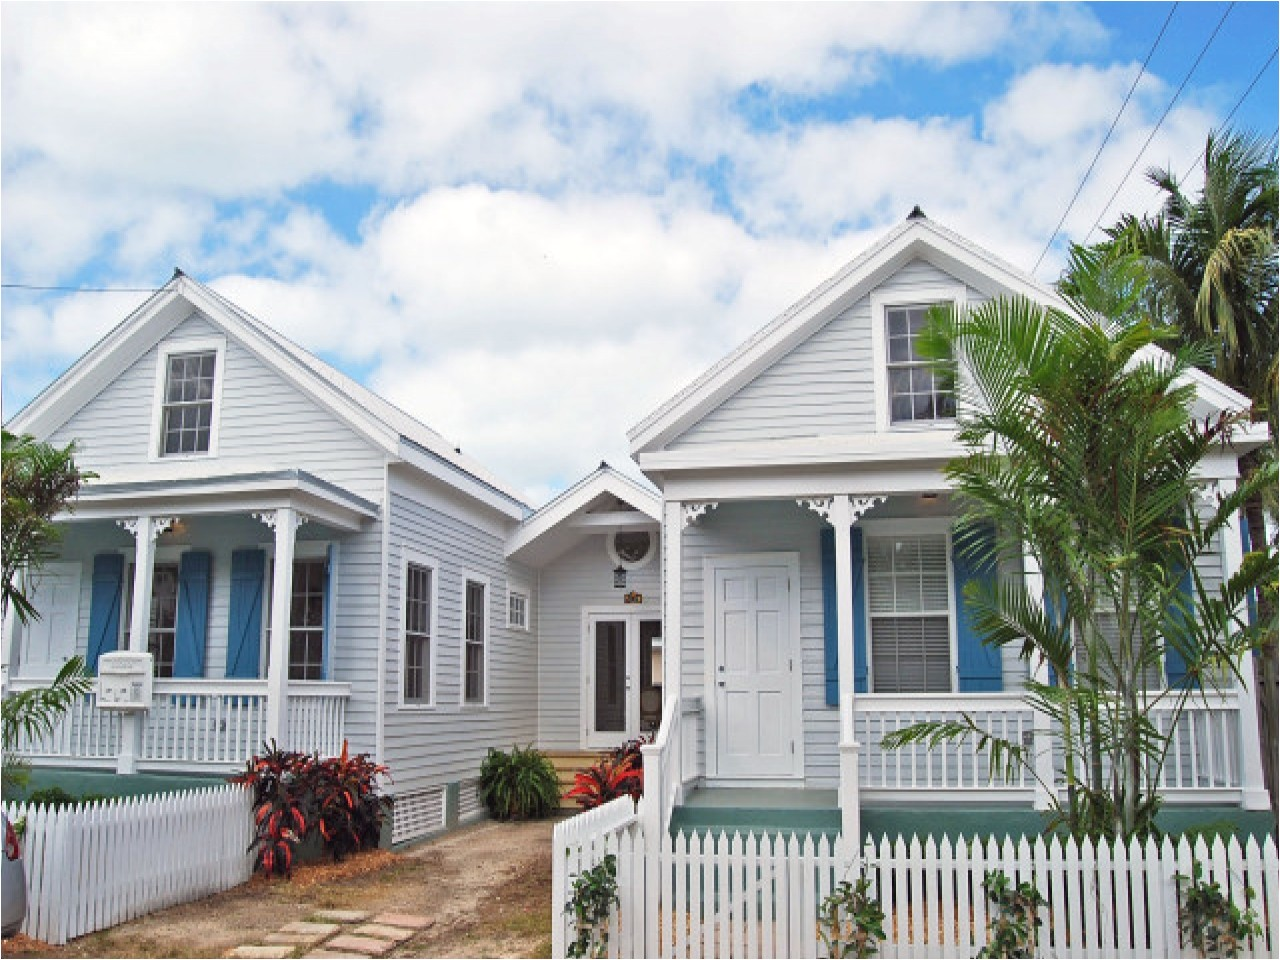 1560d5cfff23d07d key west style homes for sale in florida key west style home designs